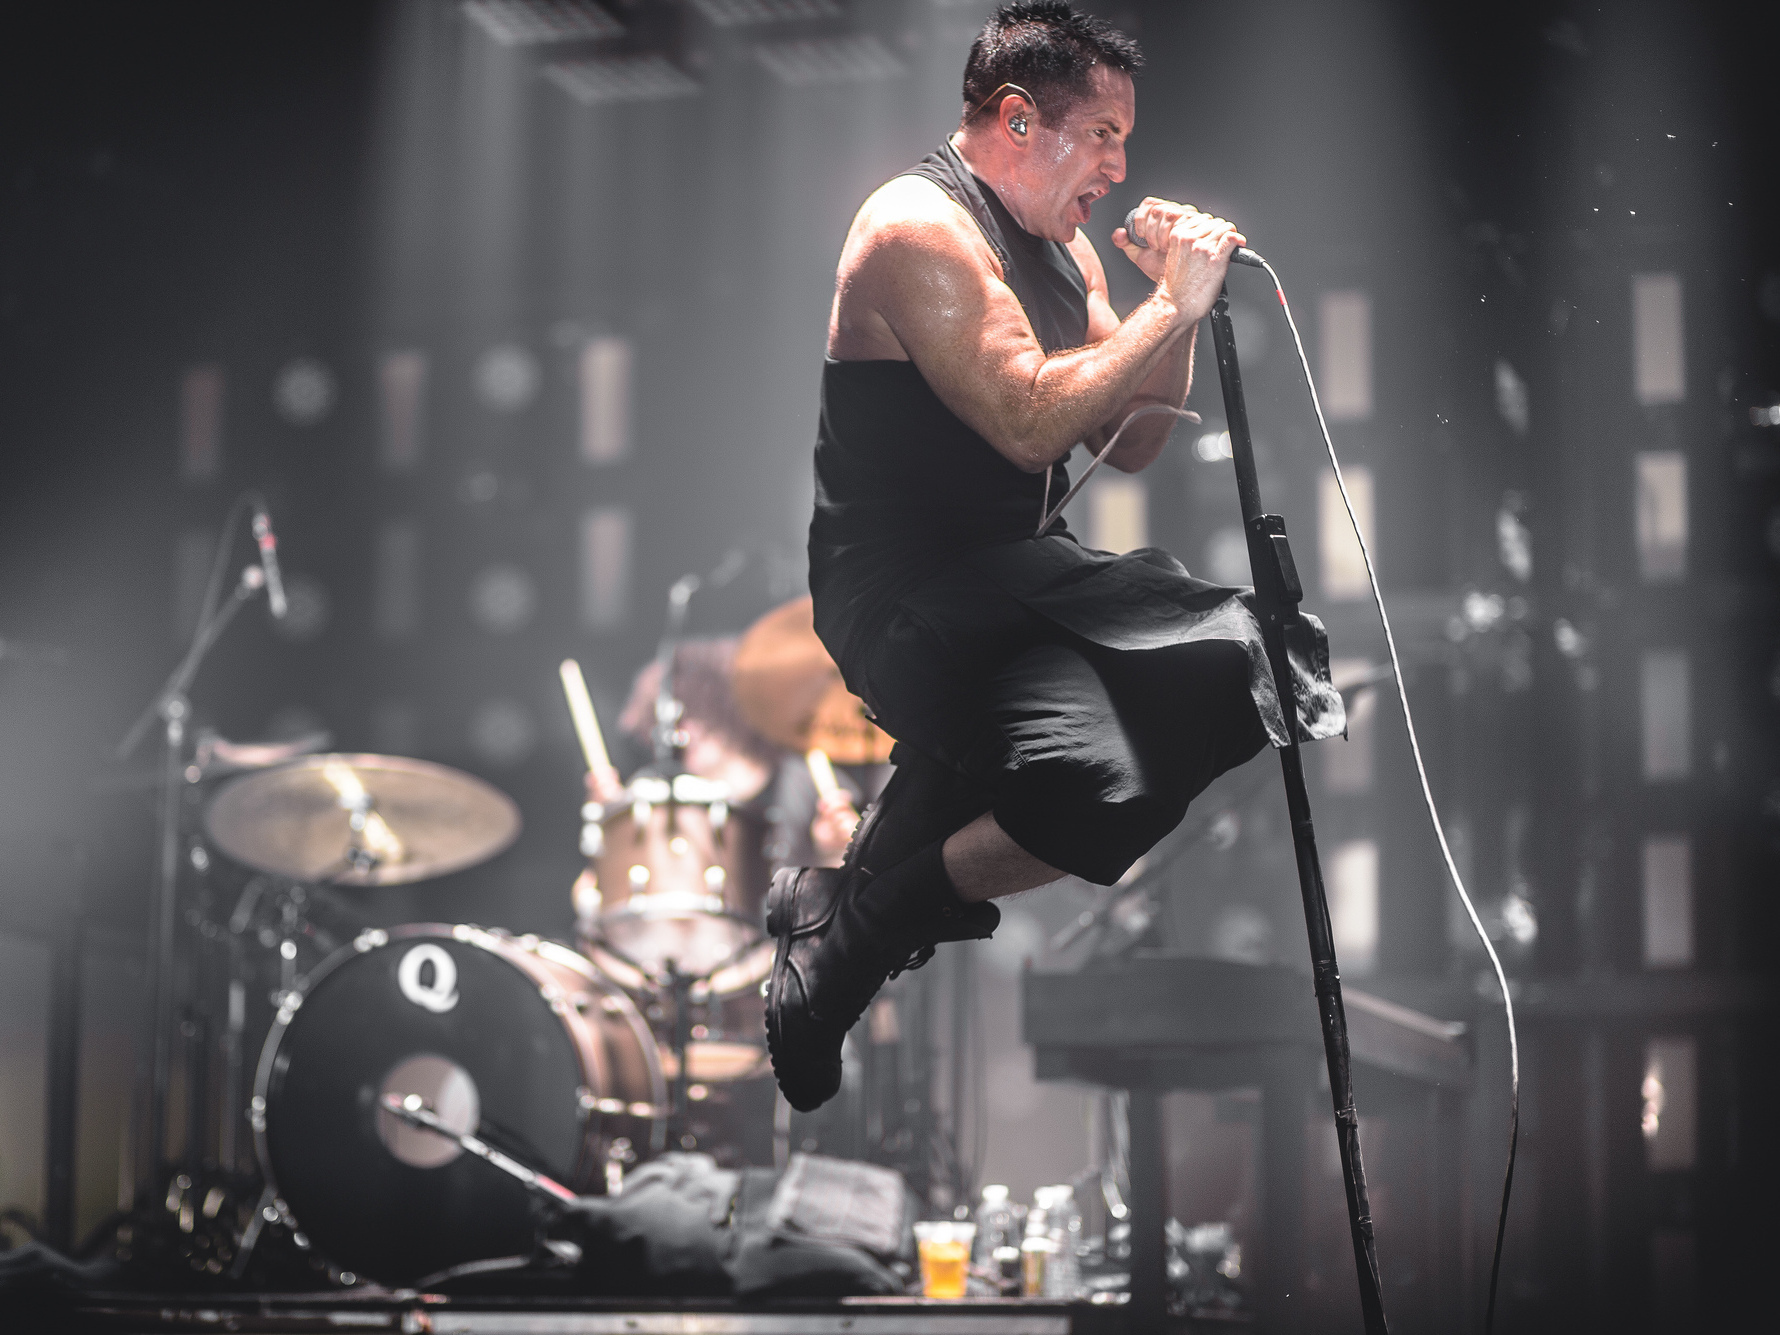 Stream Nine Inch Nails' 'Not The Actual Events' EP